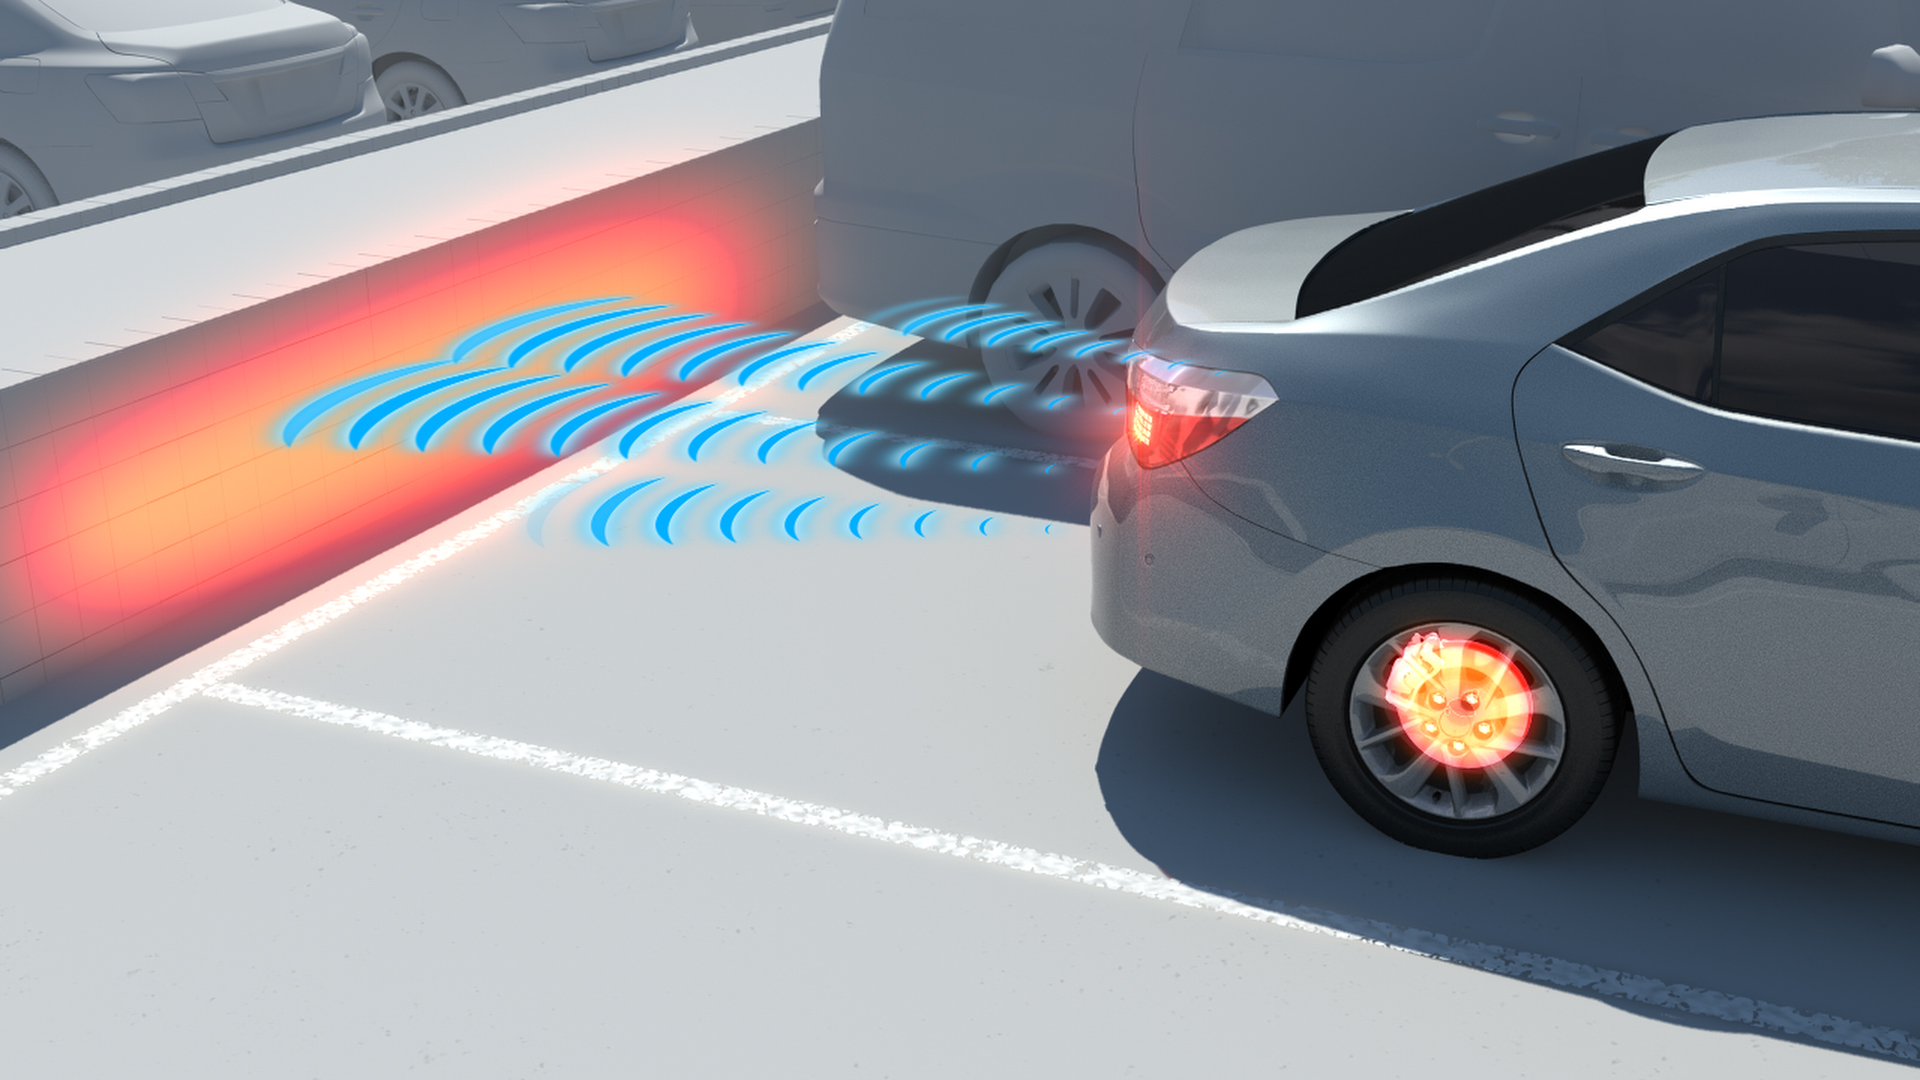 Pedal misapplication and vehicle reversing accidents in parking spaces have been significantly reduced by Intelligent Clearance Sonar.